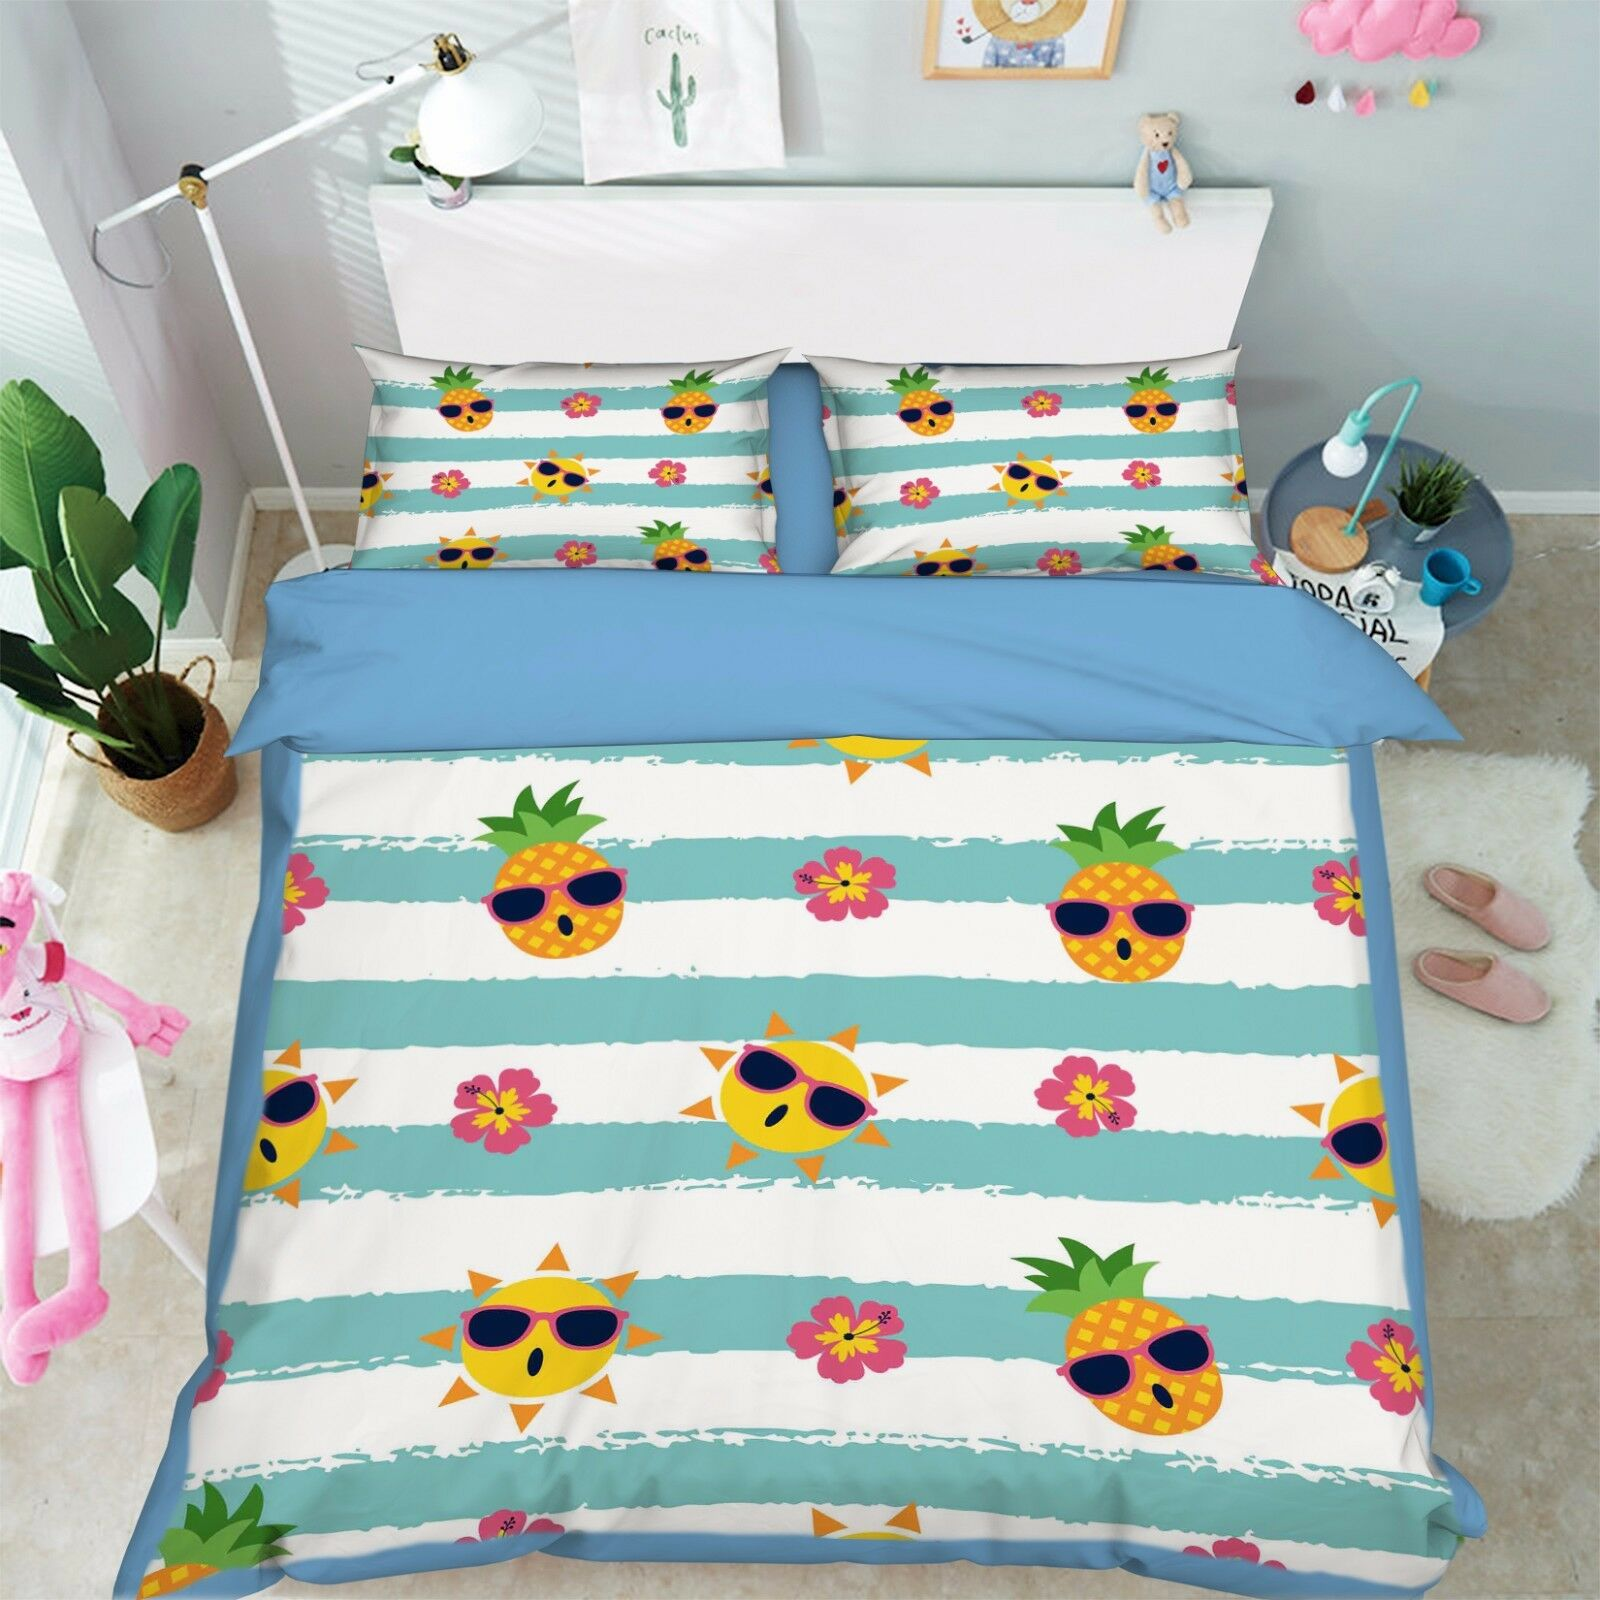 3D Pineapple 986 Bed Pillowcases Quilt Duvet Cover Set Single Queen UK Kyra